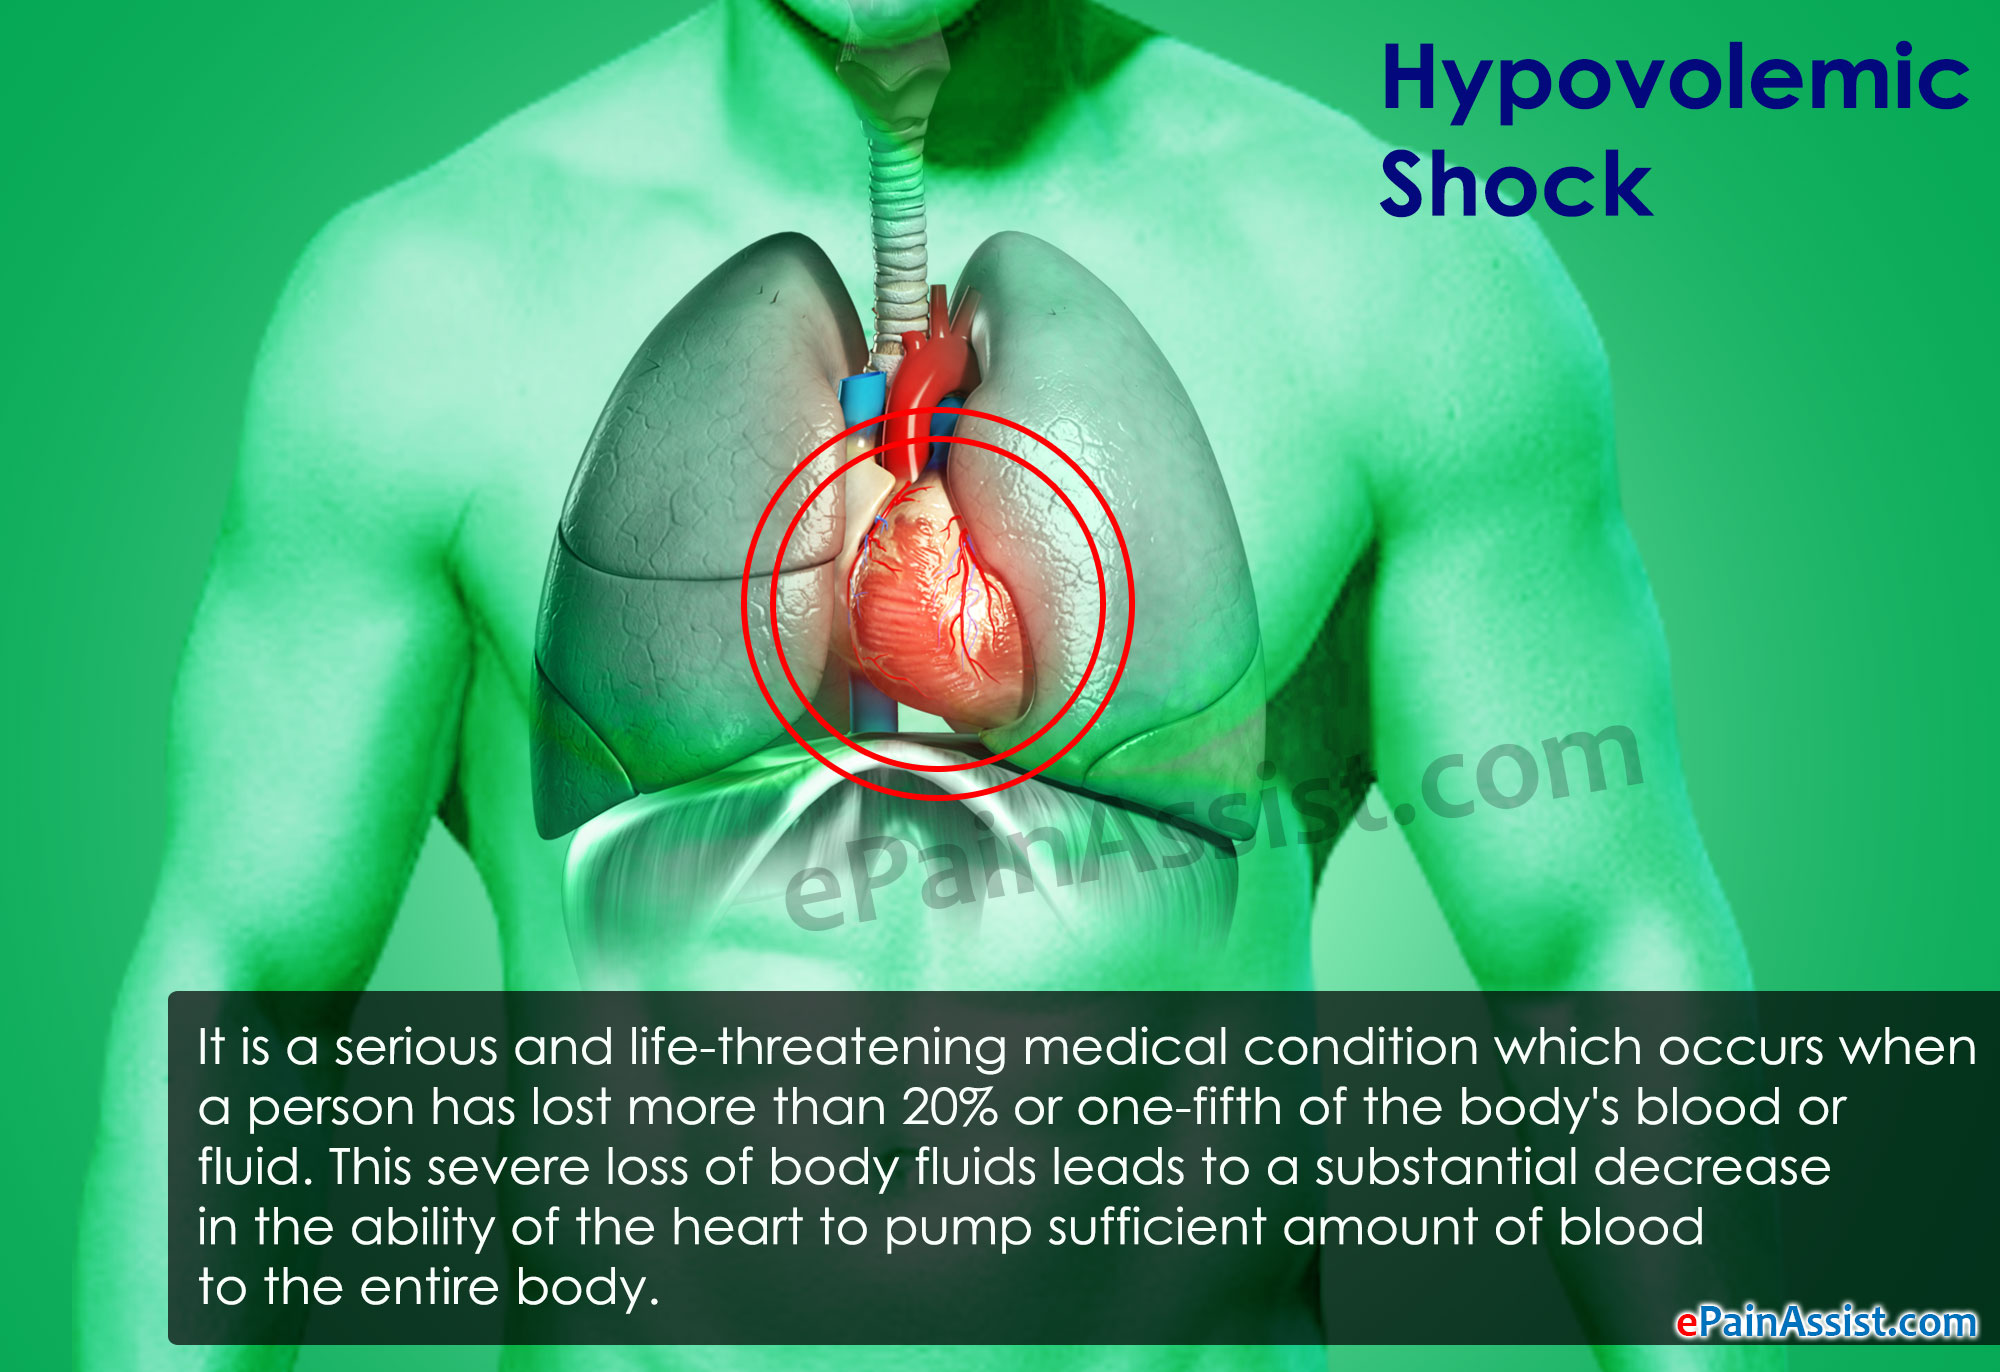 Hypovolemic Shock|Causes|Symptoms|Signs|Treatment|Prognosis